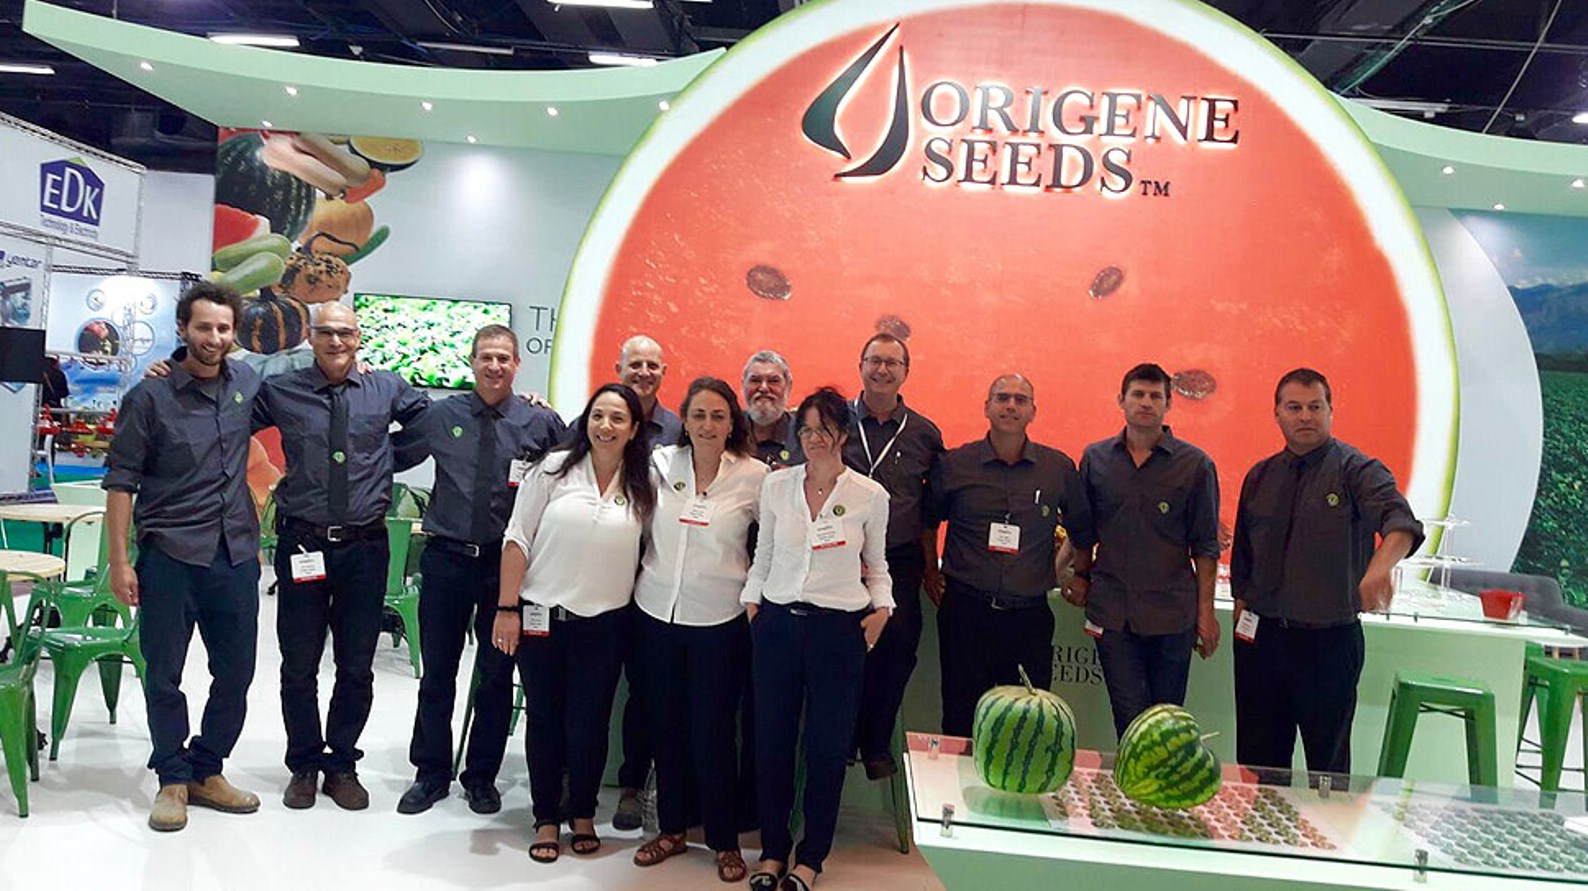 Origene's booth at Agritech, May 2018, Tel Aviv. Photo: courtesy